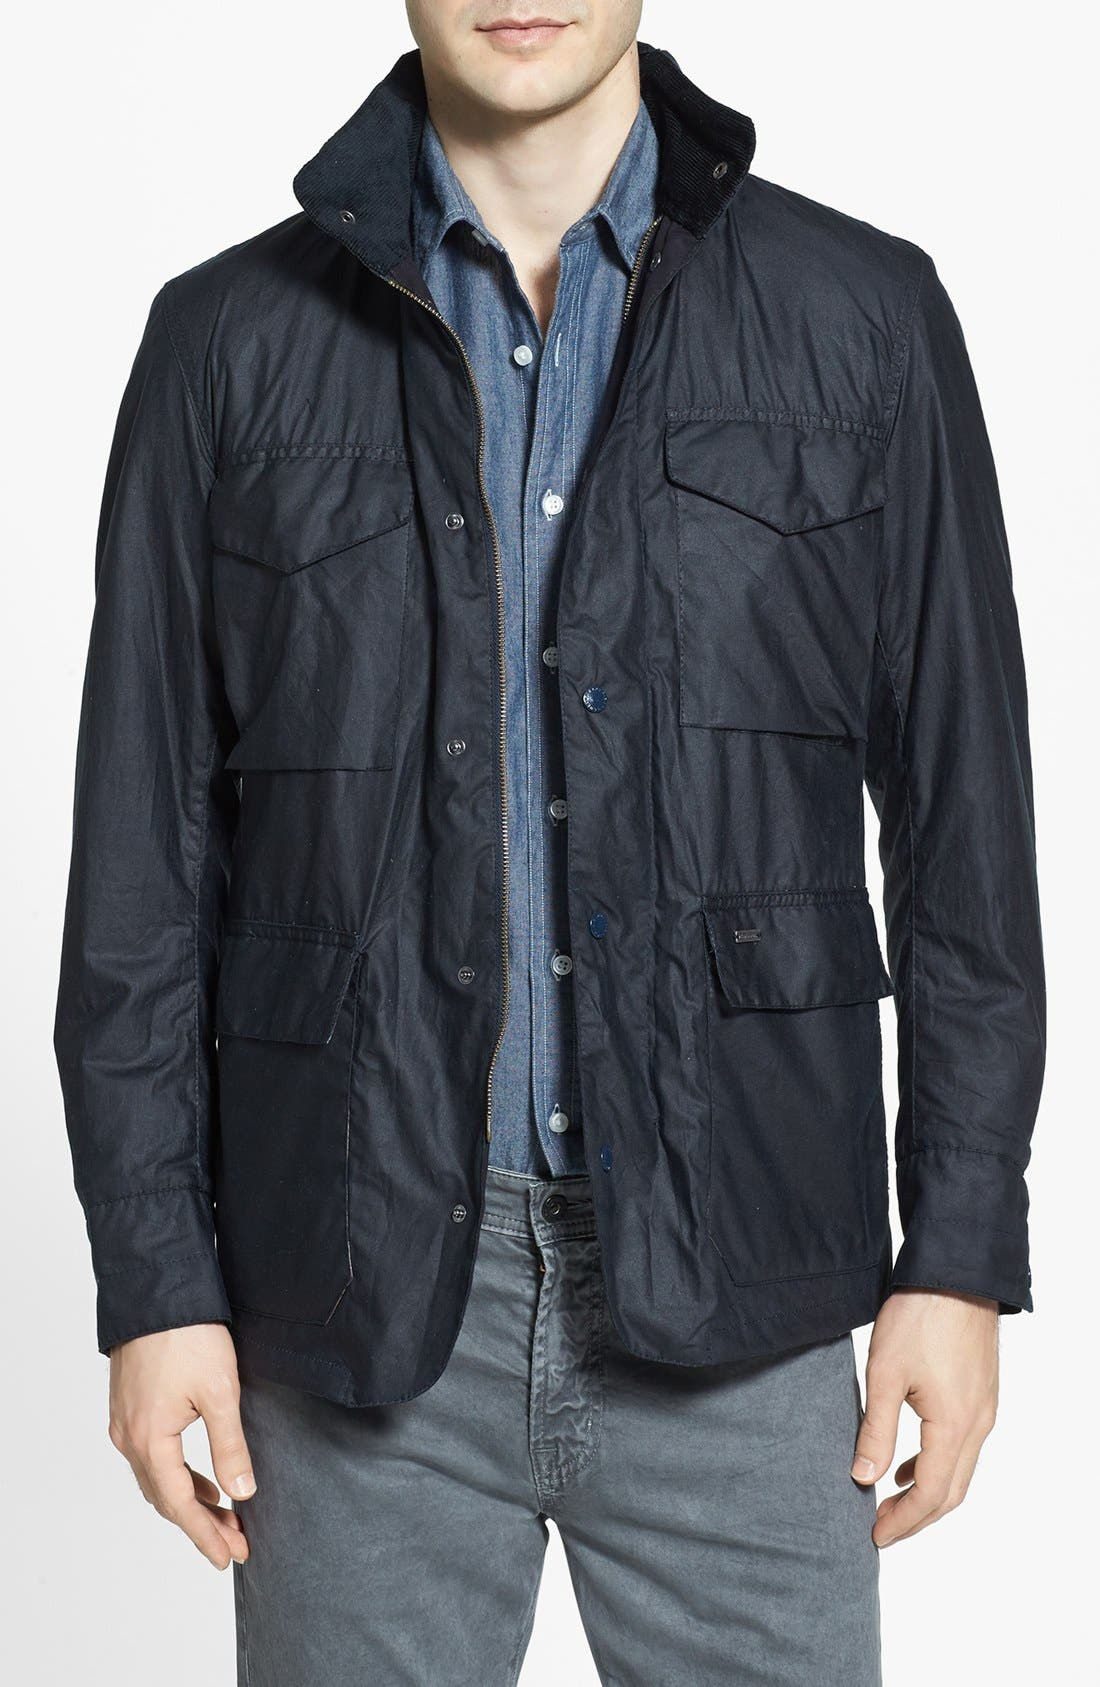 Alternate Image 1 Selected - Barbour 'Sapper' Tailored Fit Weatherproof Waxed Jacket